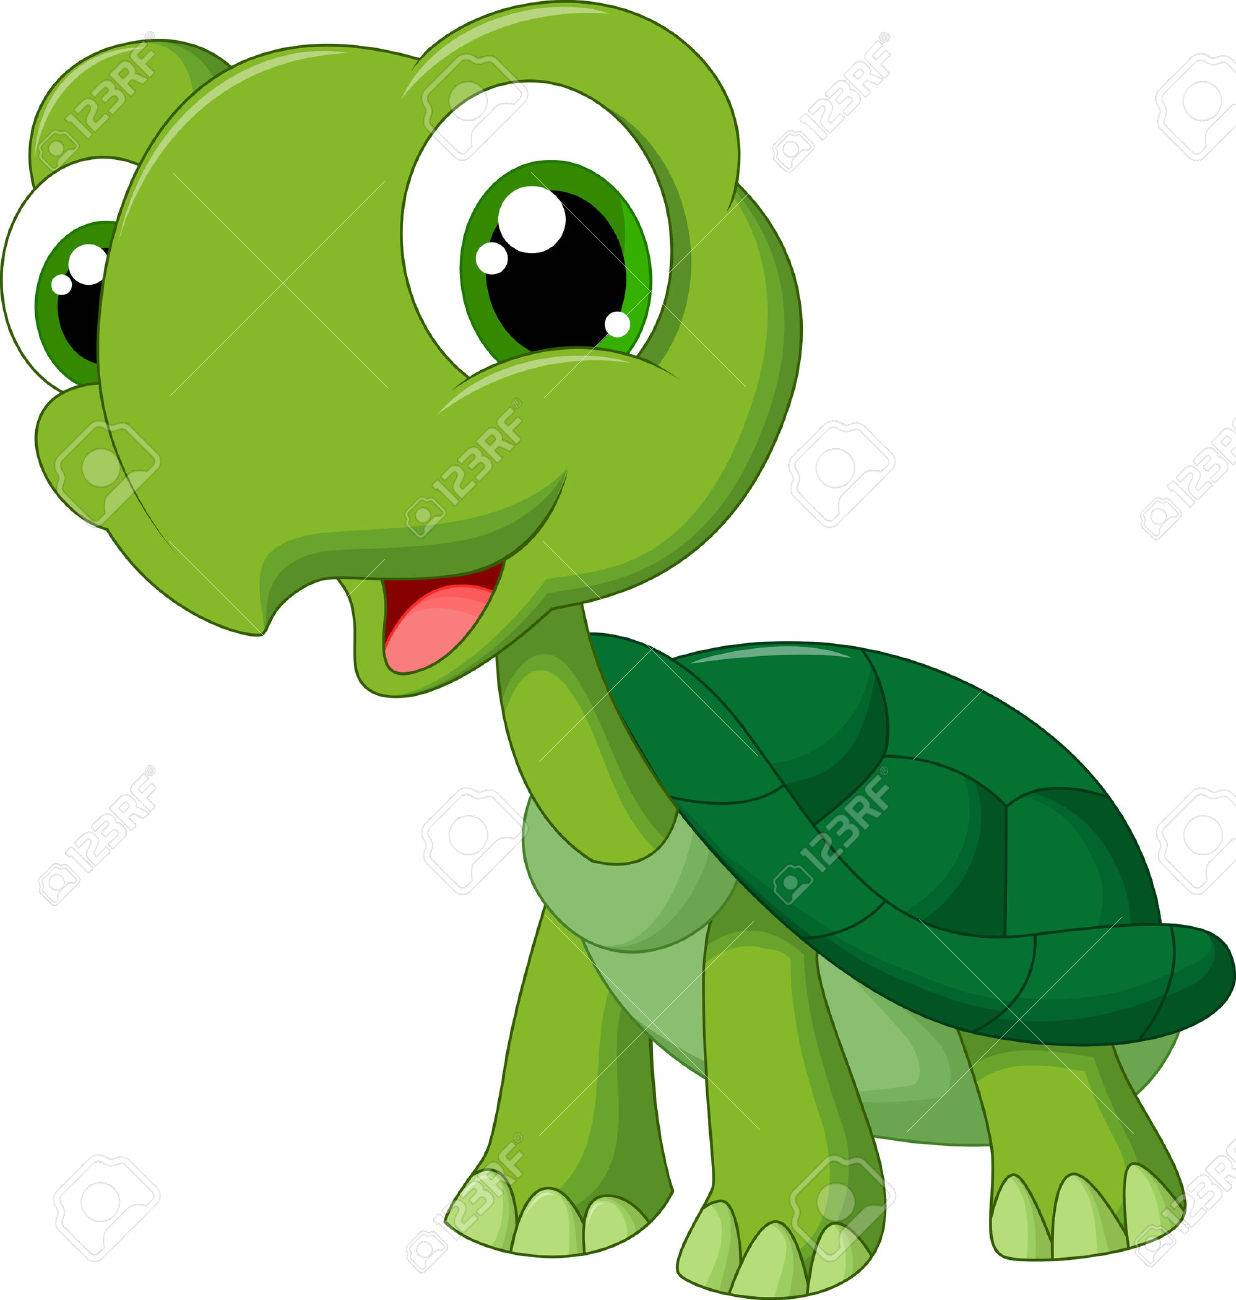 Cute Cartoon Turtle Royalty Free Cliparts, Vectors, And Stock ...